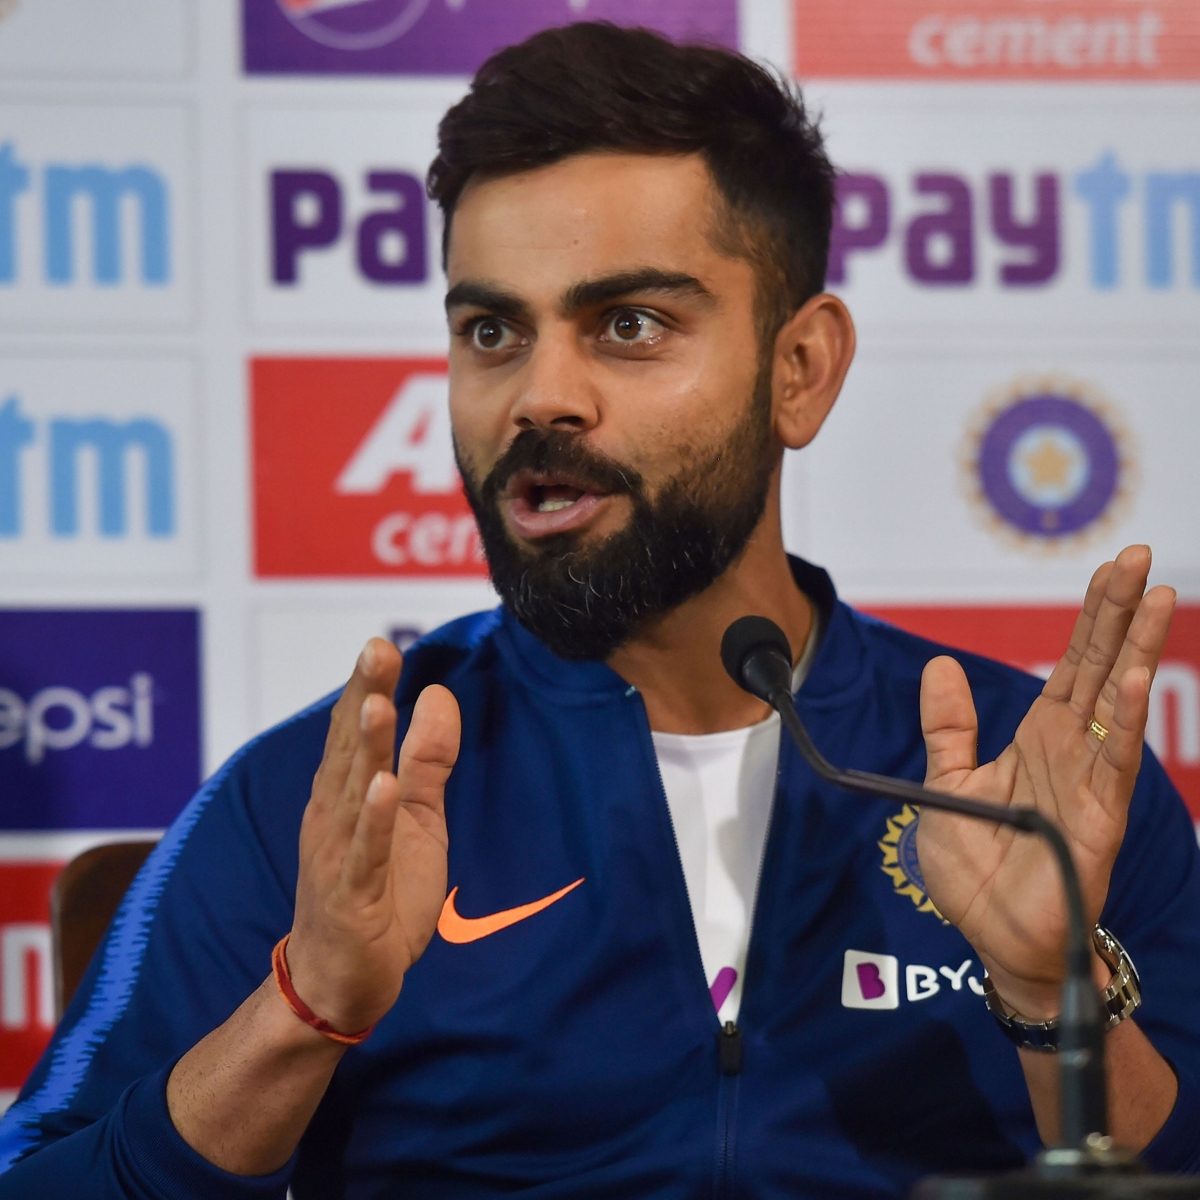 Dear Virat Kohli, being a GOAT is not a free pass to be rude to journalists without rhyme or reason